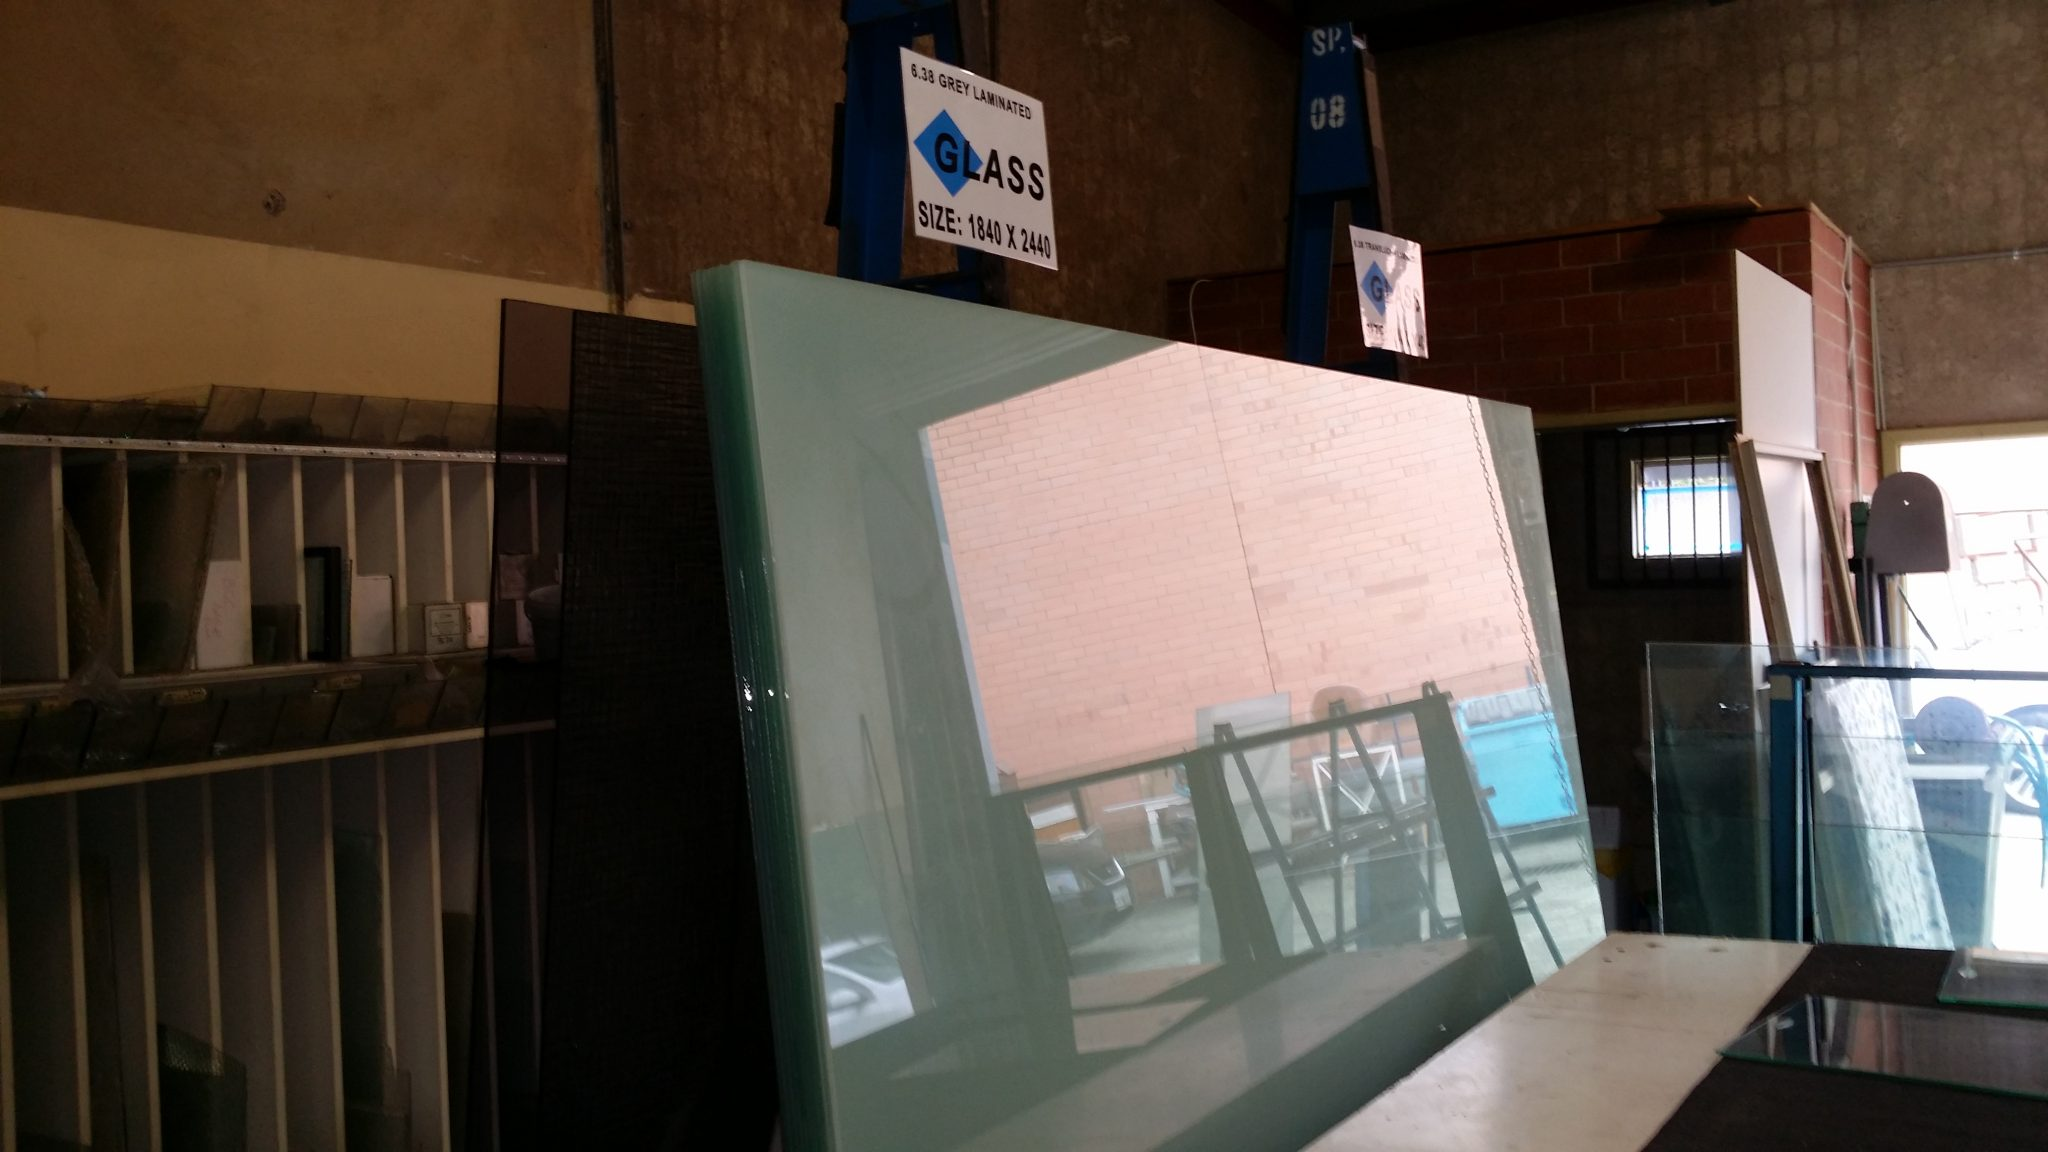 Translucent laminated glass sheets